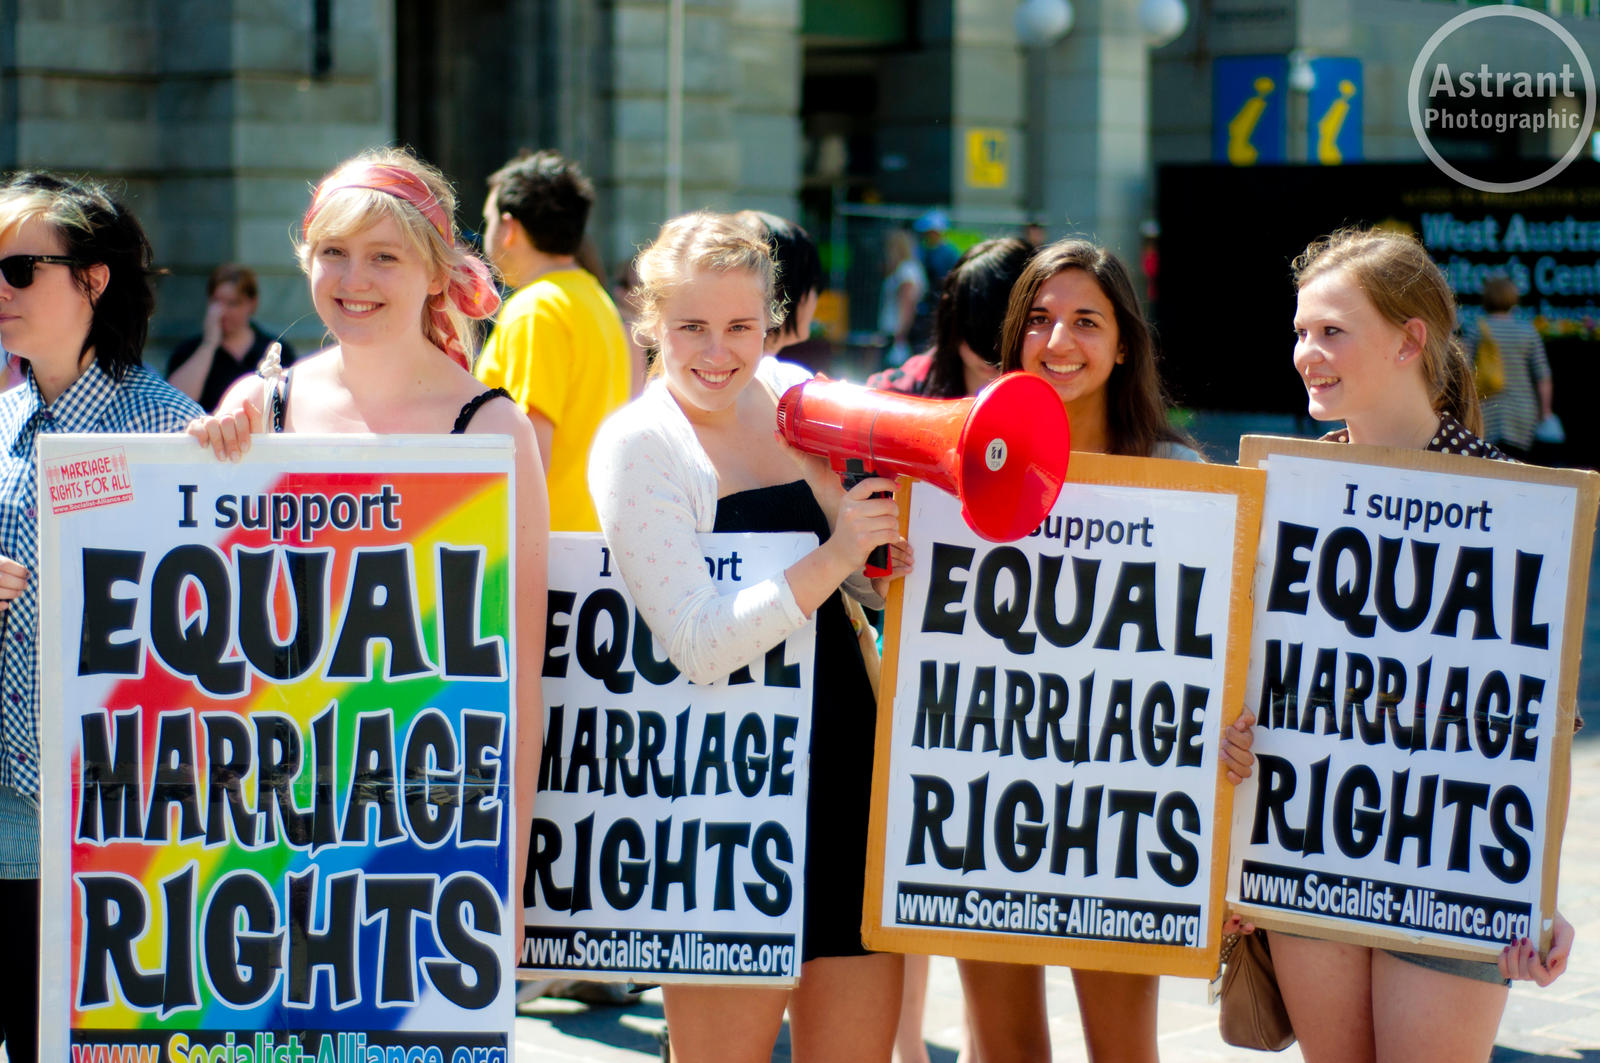 gay marriage equal rights essay · read the essay that helped start the gay marriage movement in of the gay marriage movement before sullivan's essay for equal dignity in.